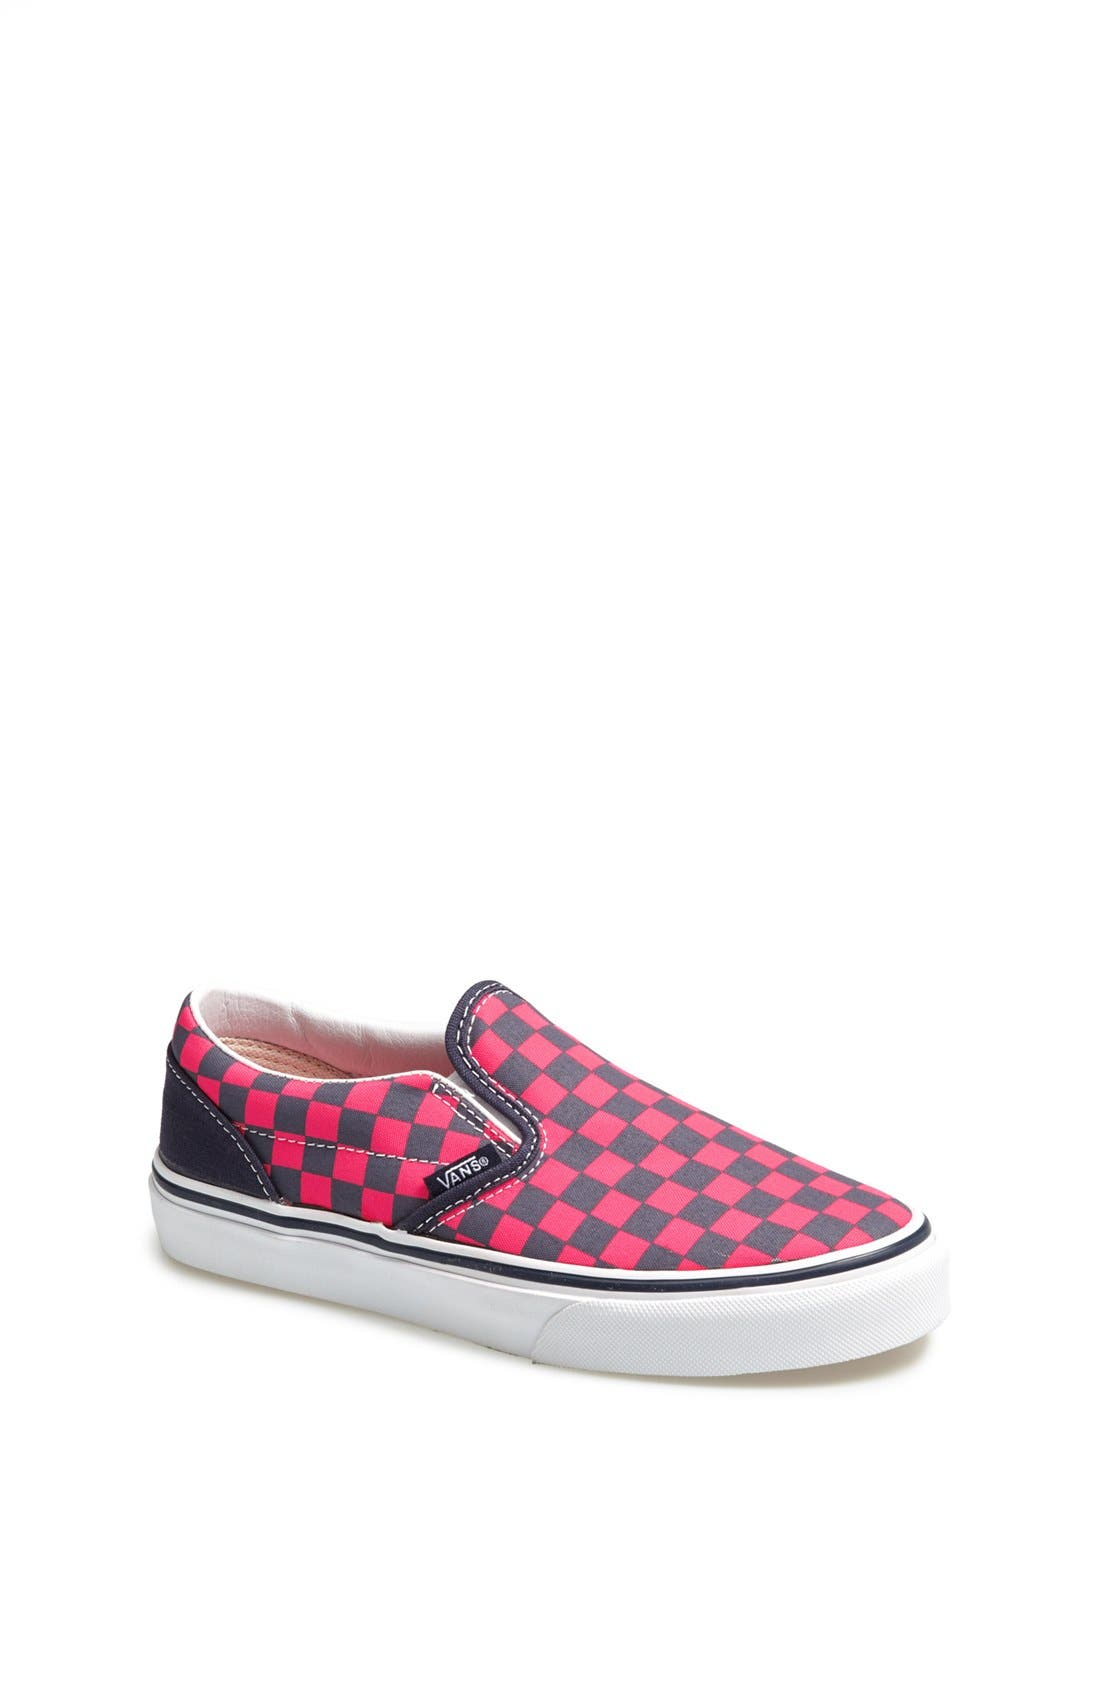 Alternate Image 1 Selected - VANS CLASSIC SLIP ON CHECKERBOARD SNEAKER